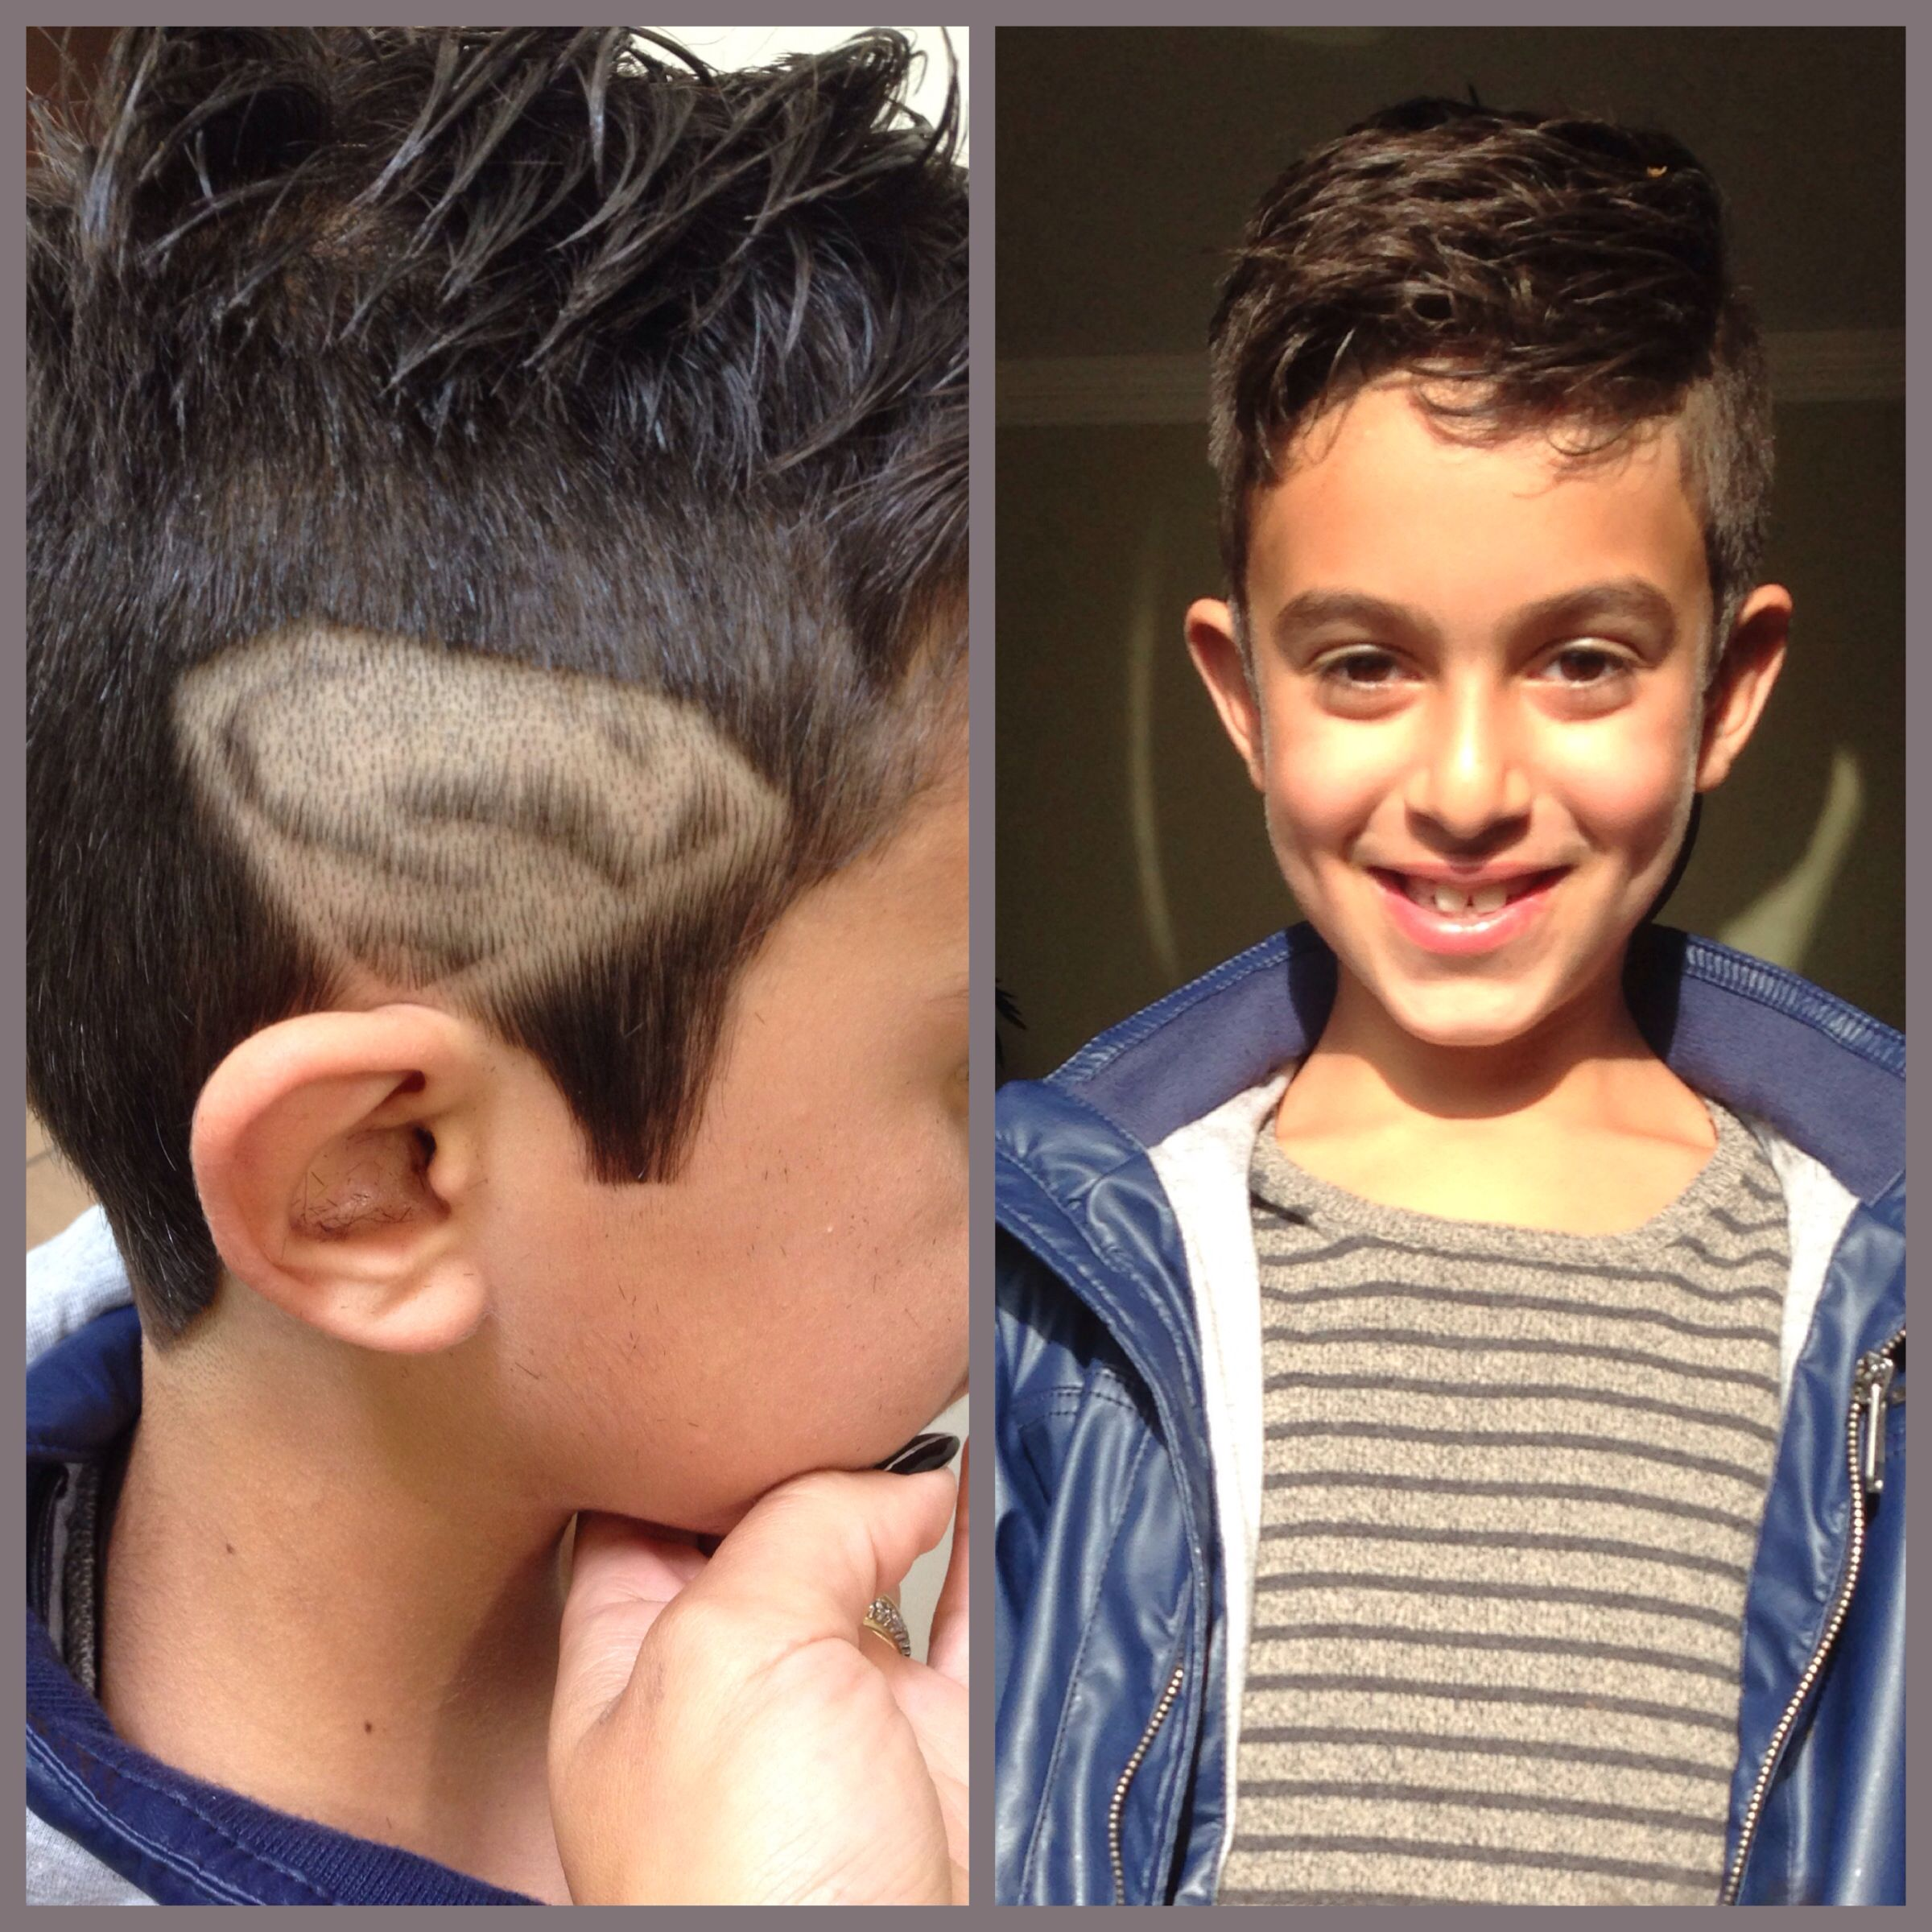 Superman Kids Hair Cut Kids Cuts Pinterest Hair Cuts